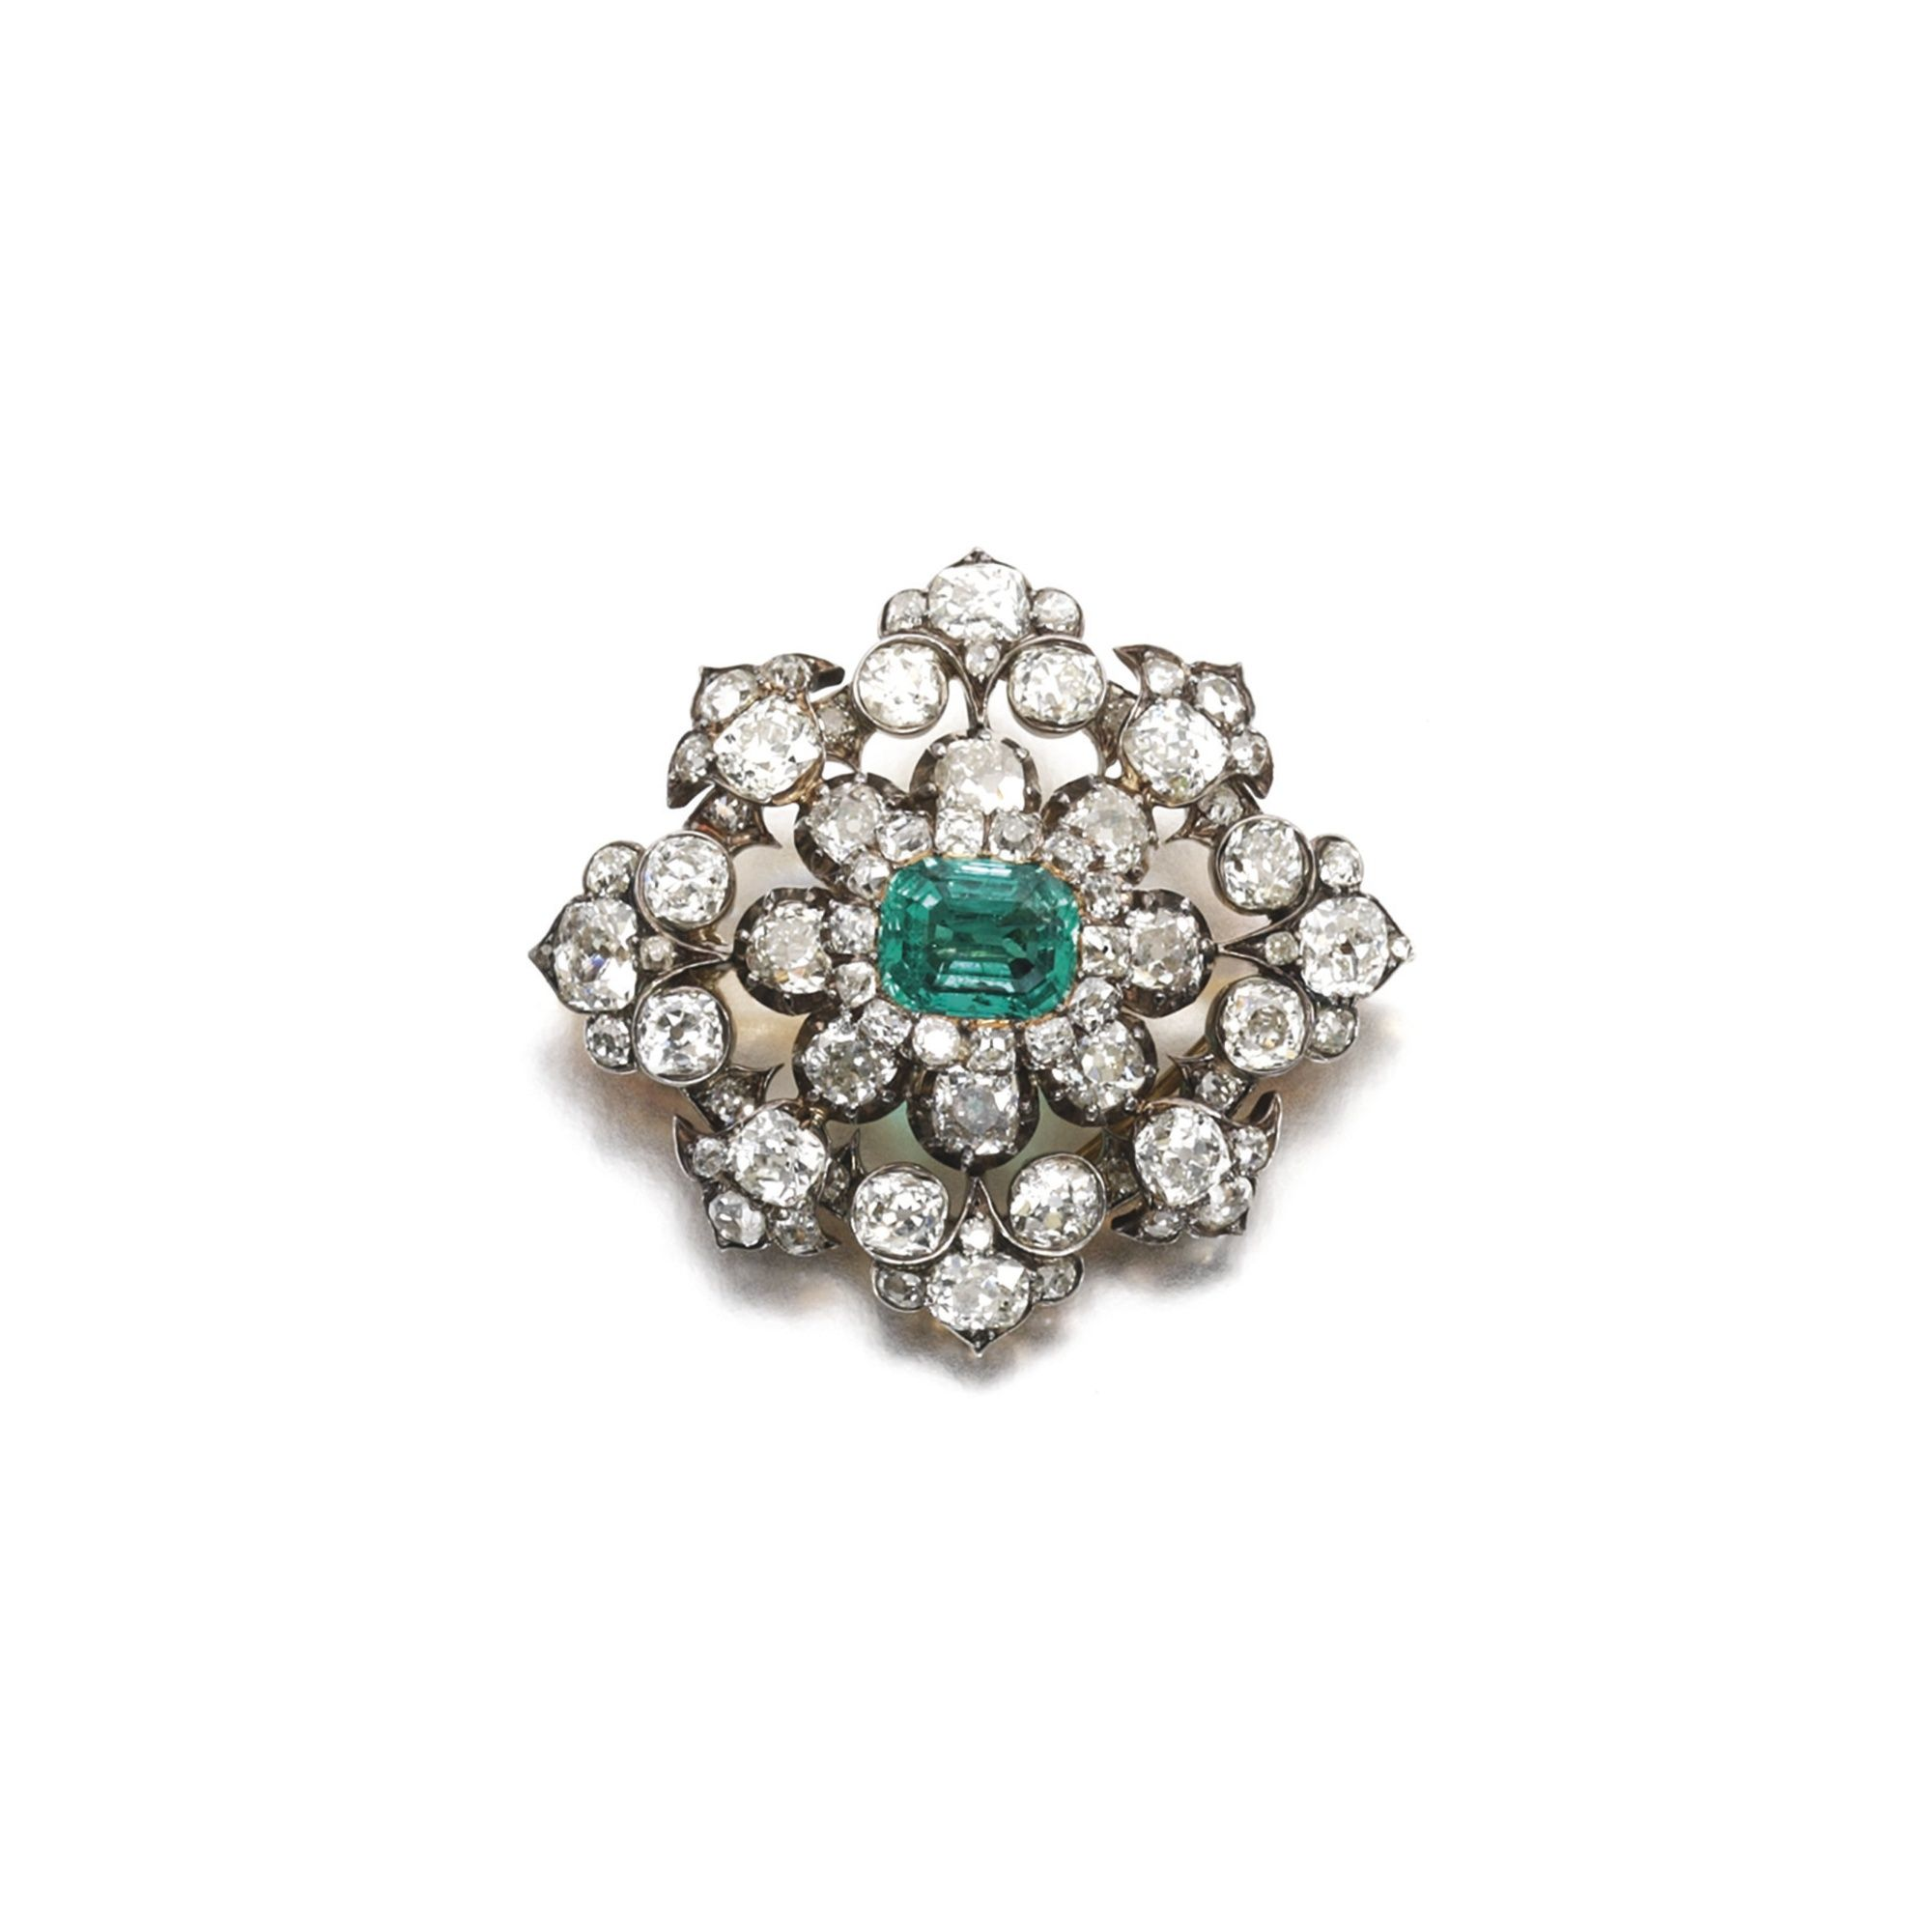 Emerald and diamond brooch of floral design clawset with an